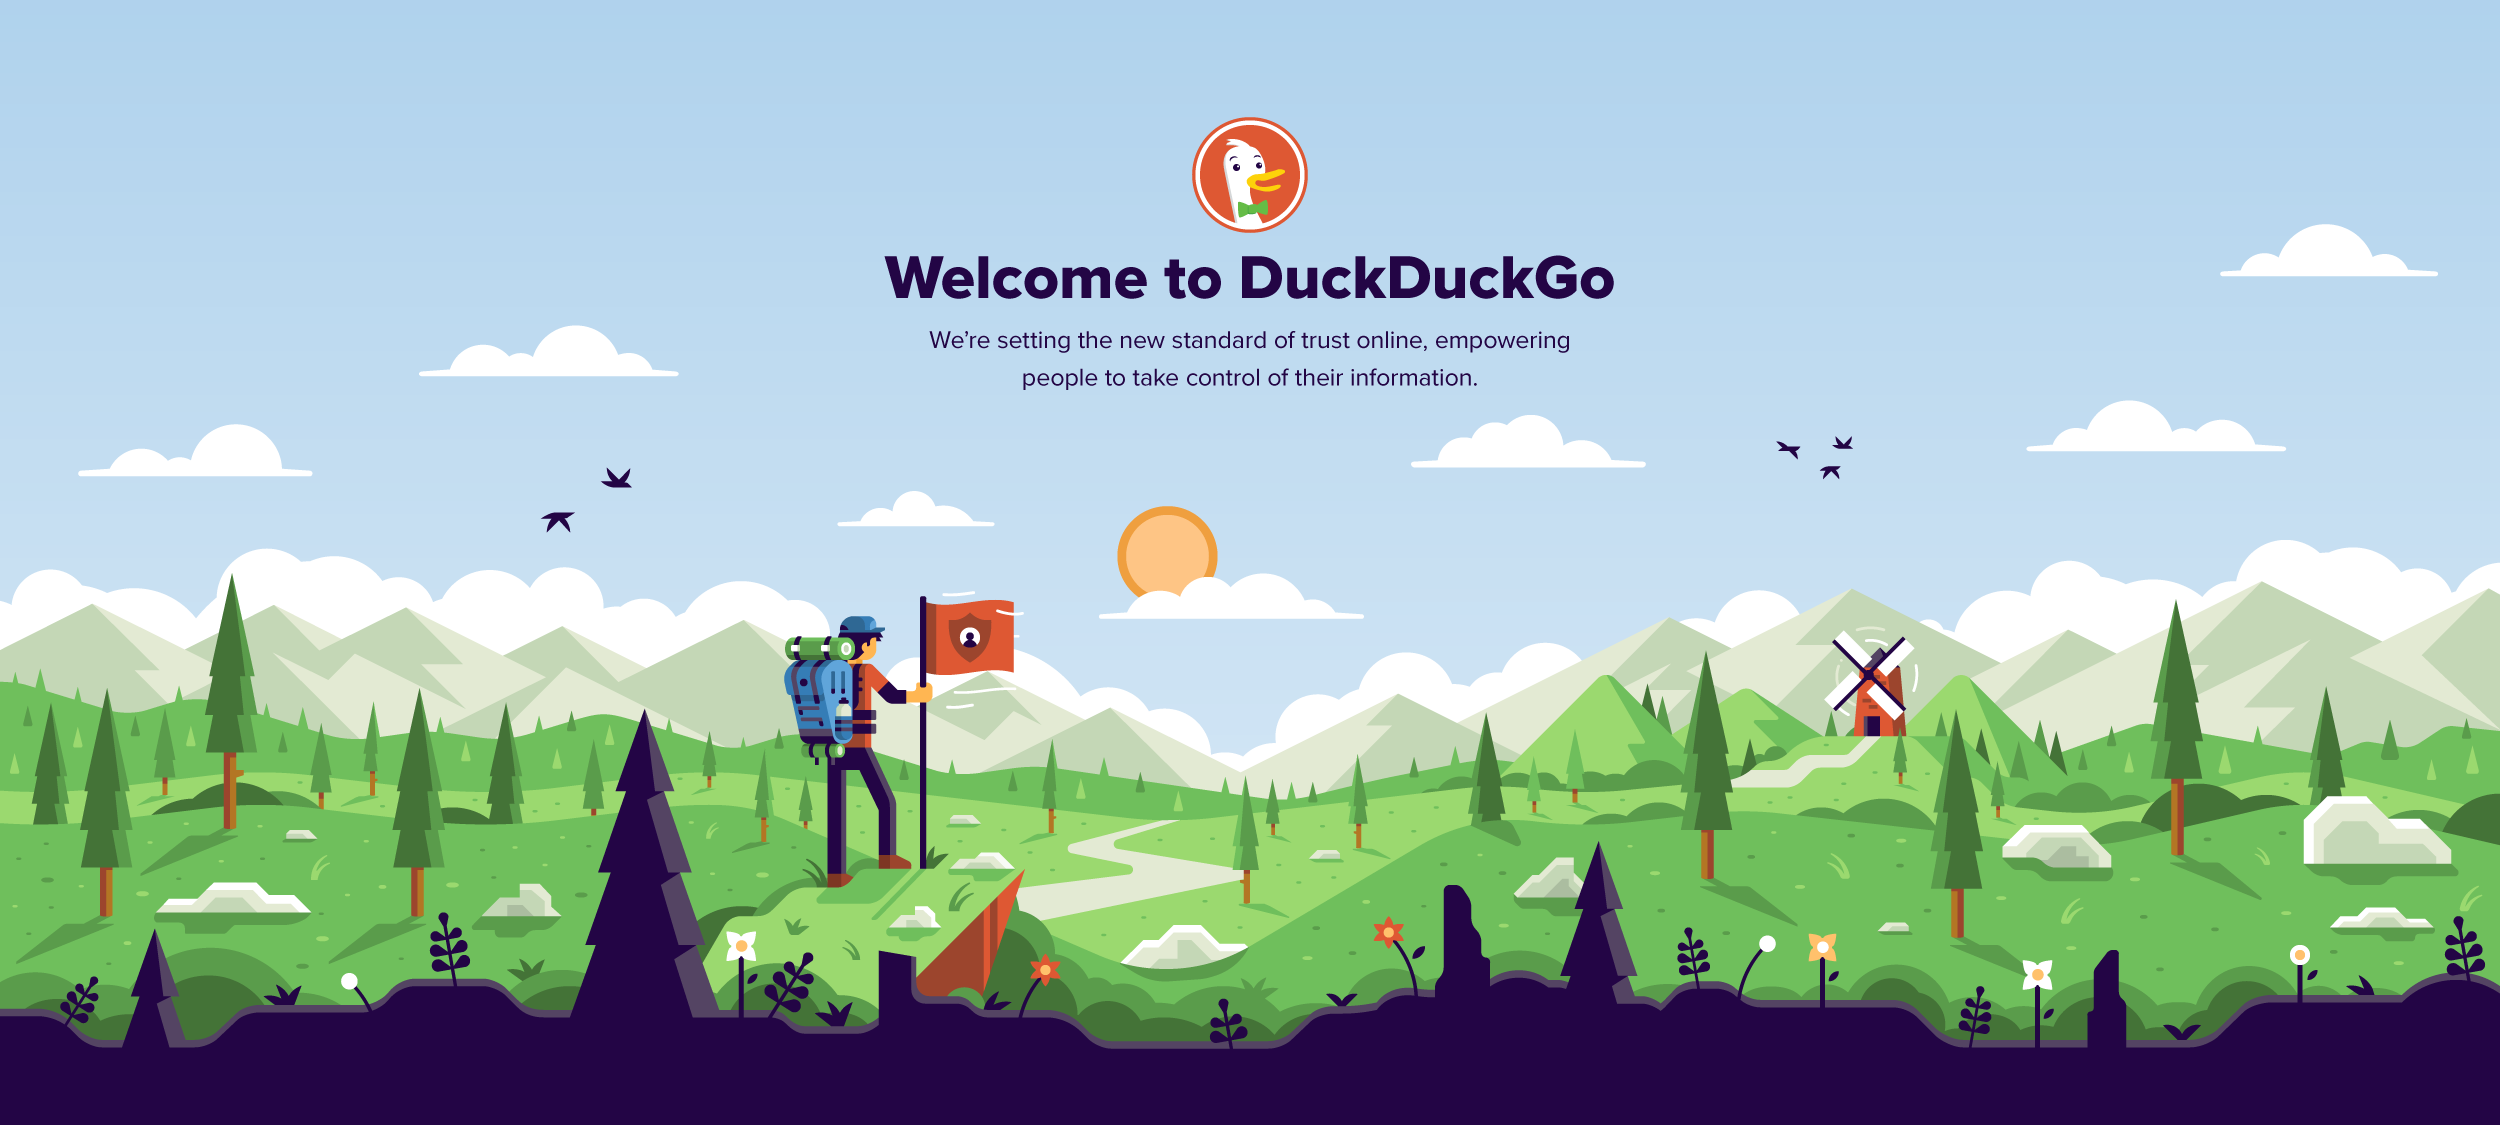 Matt Anderson DuckDuckGo hero illustration hiker alpinist.